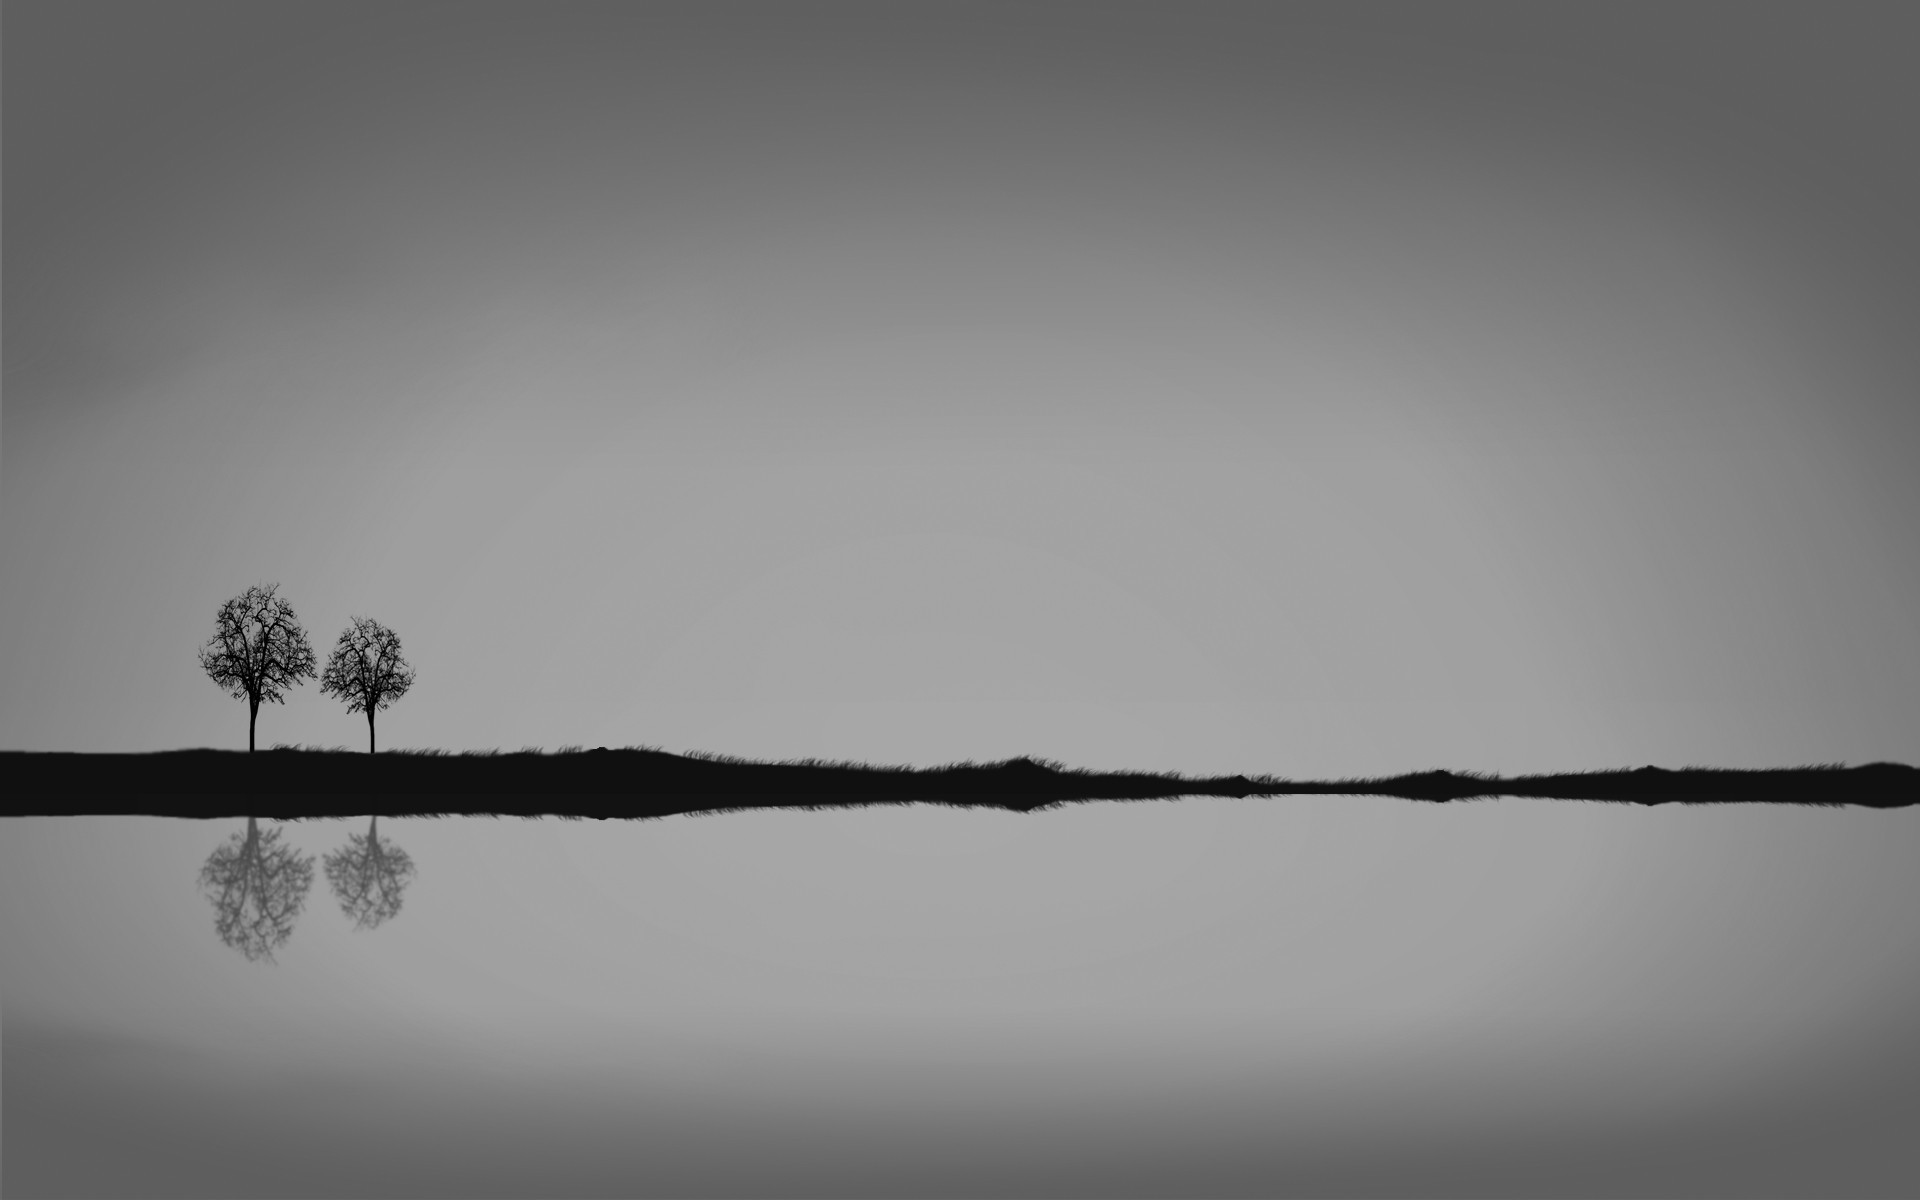 reflections minimalistic HD Wallpaper